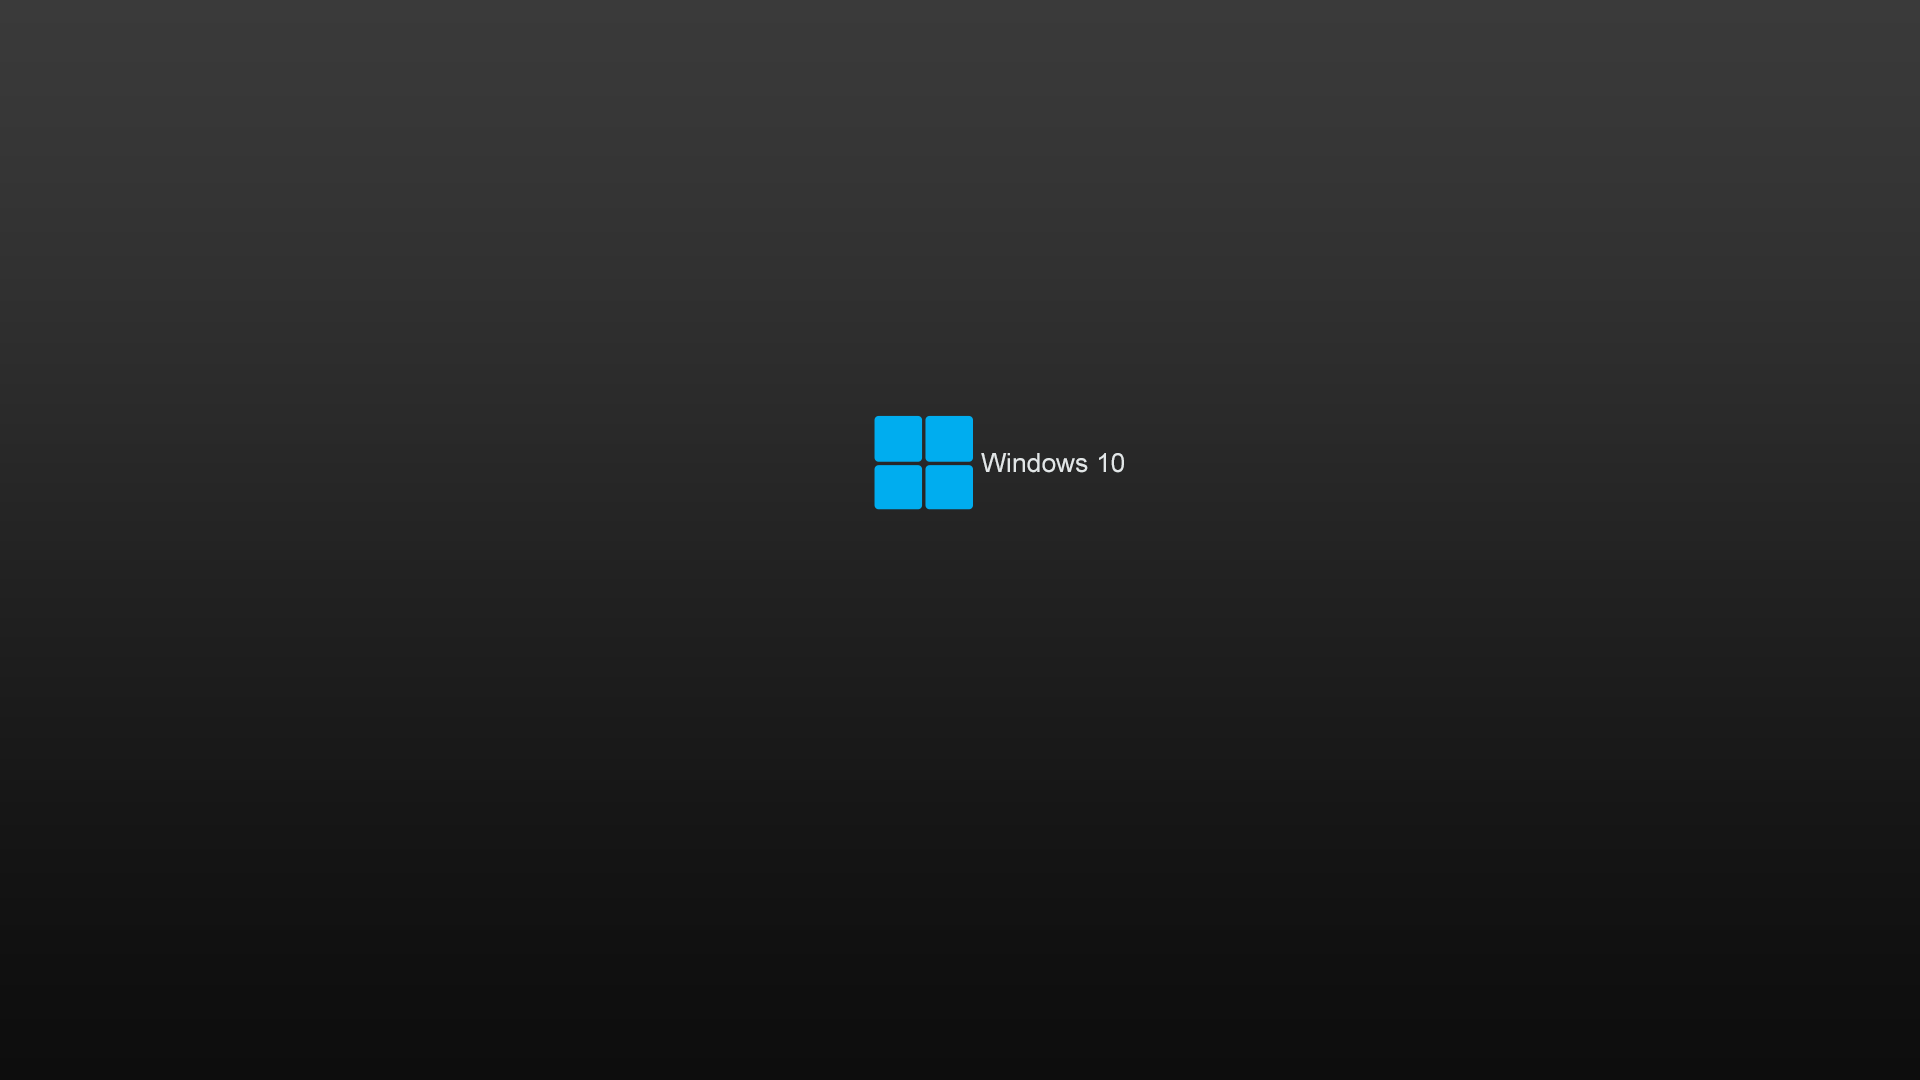 48 Dark Windows 10 Wallpaper On Wallpapersafari